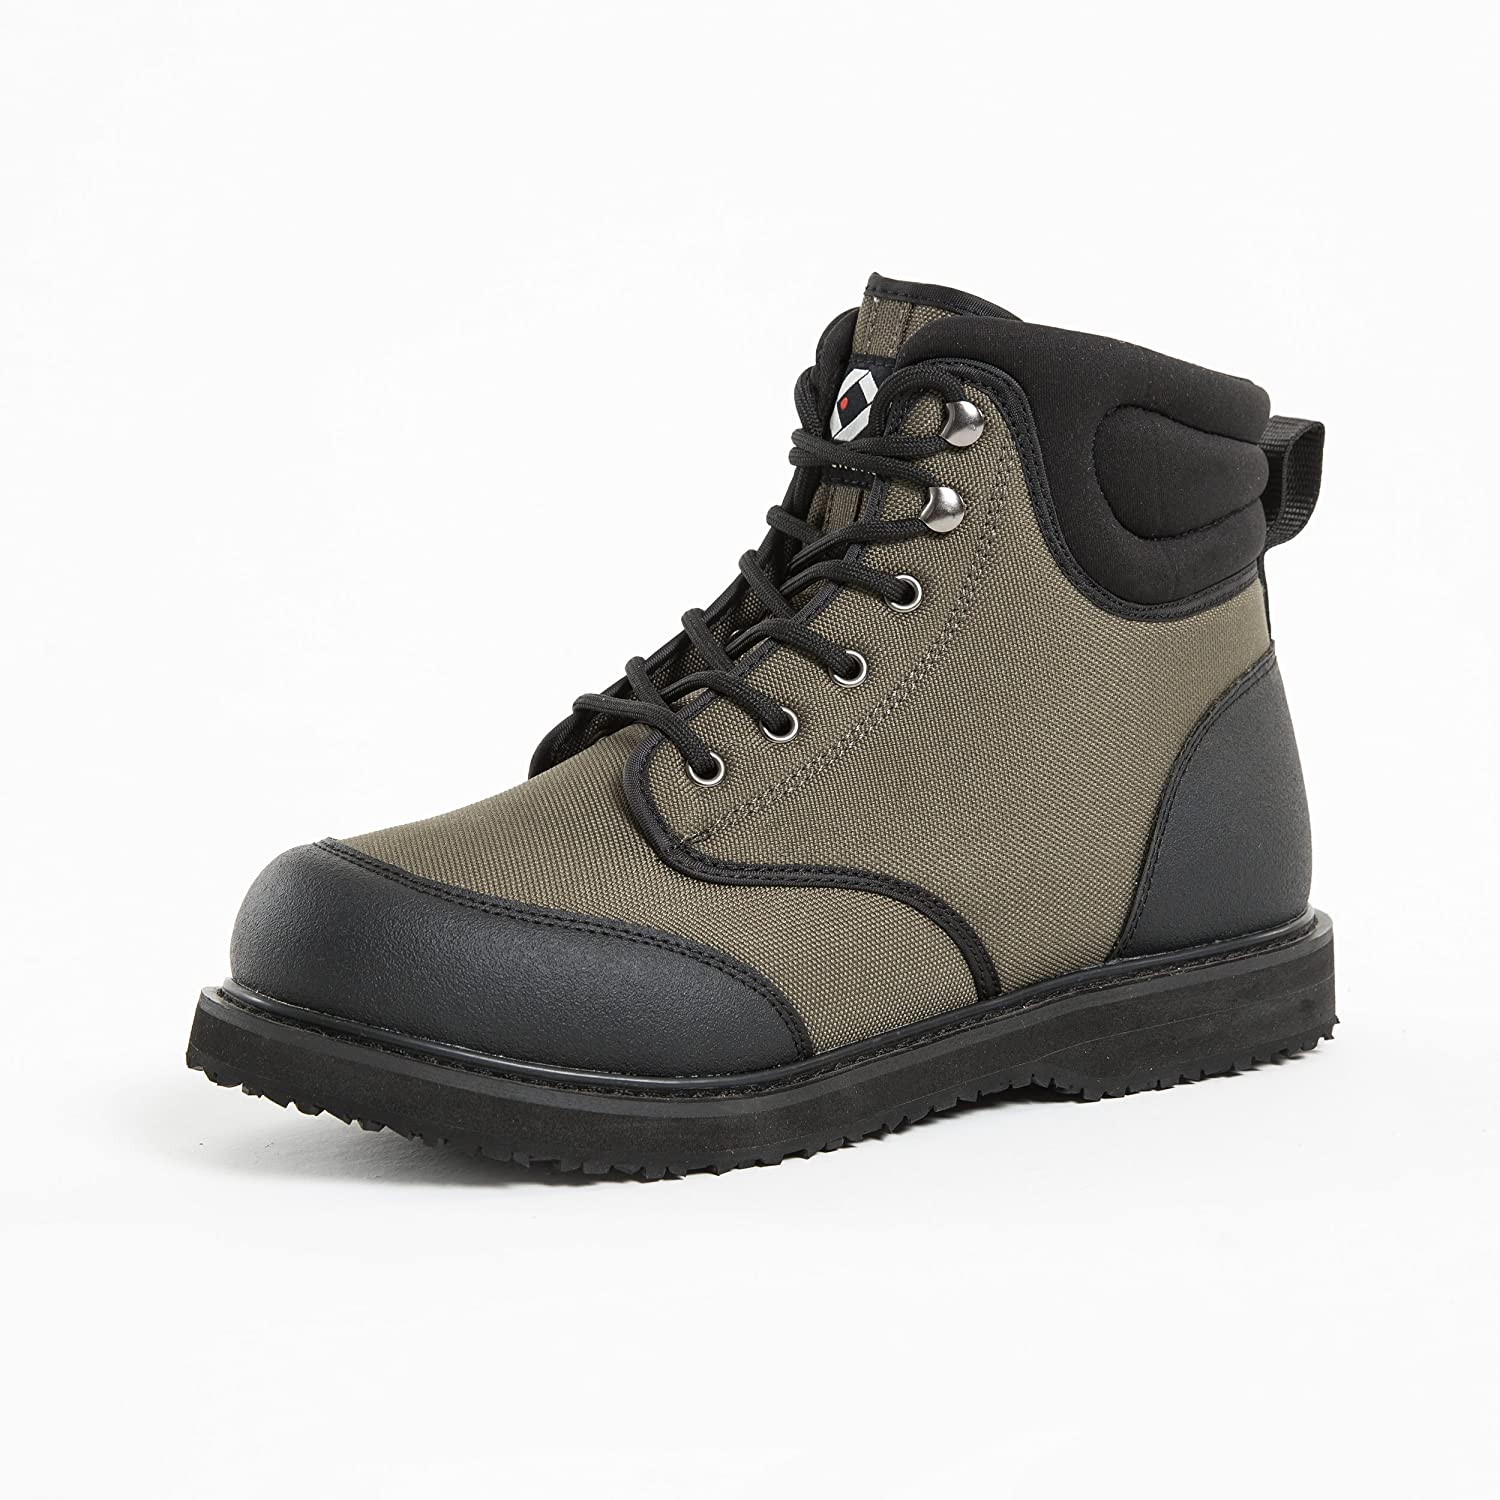 Saltwater rubber wading boots